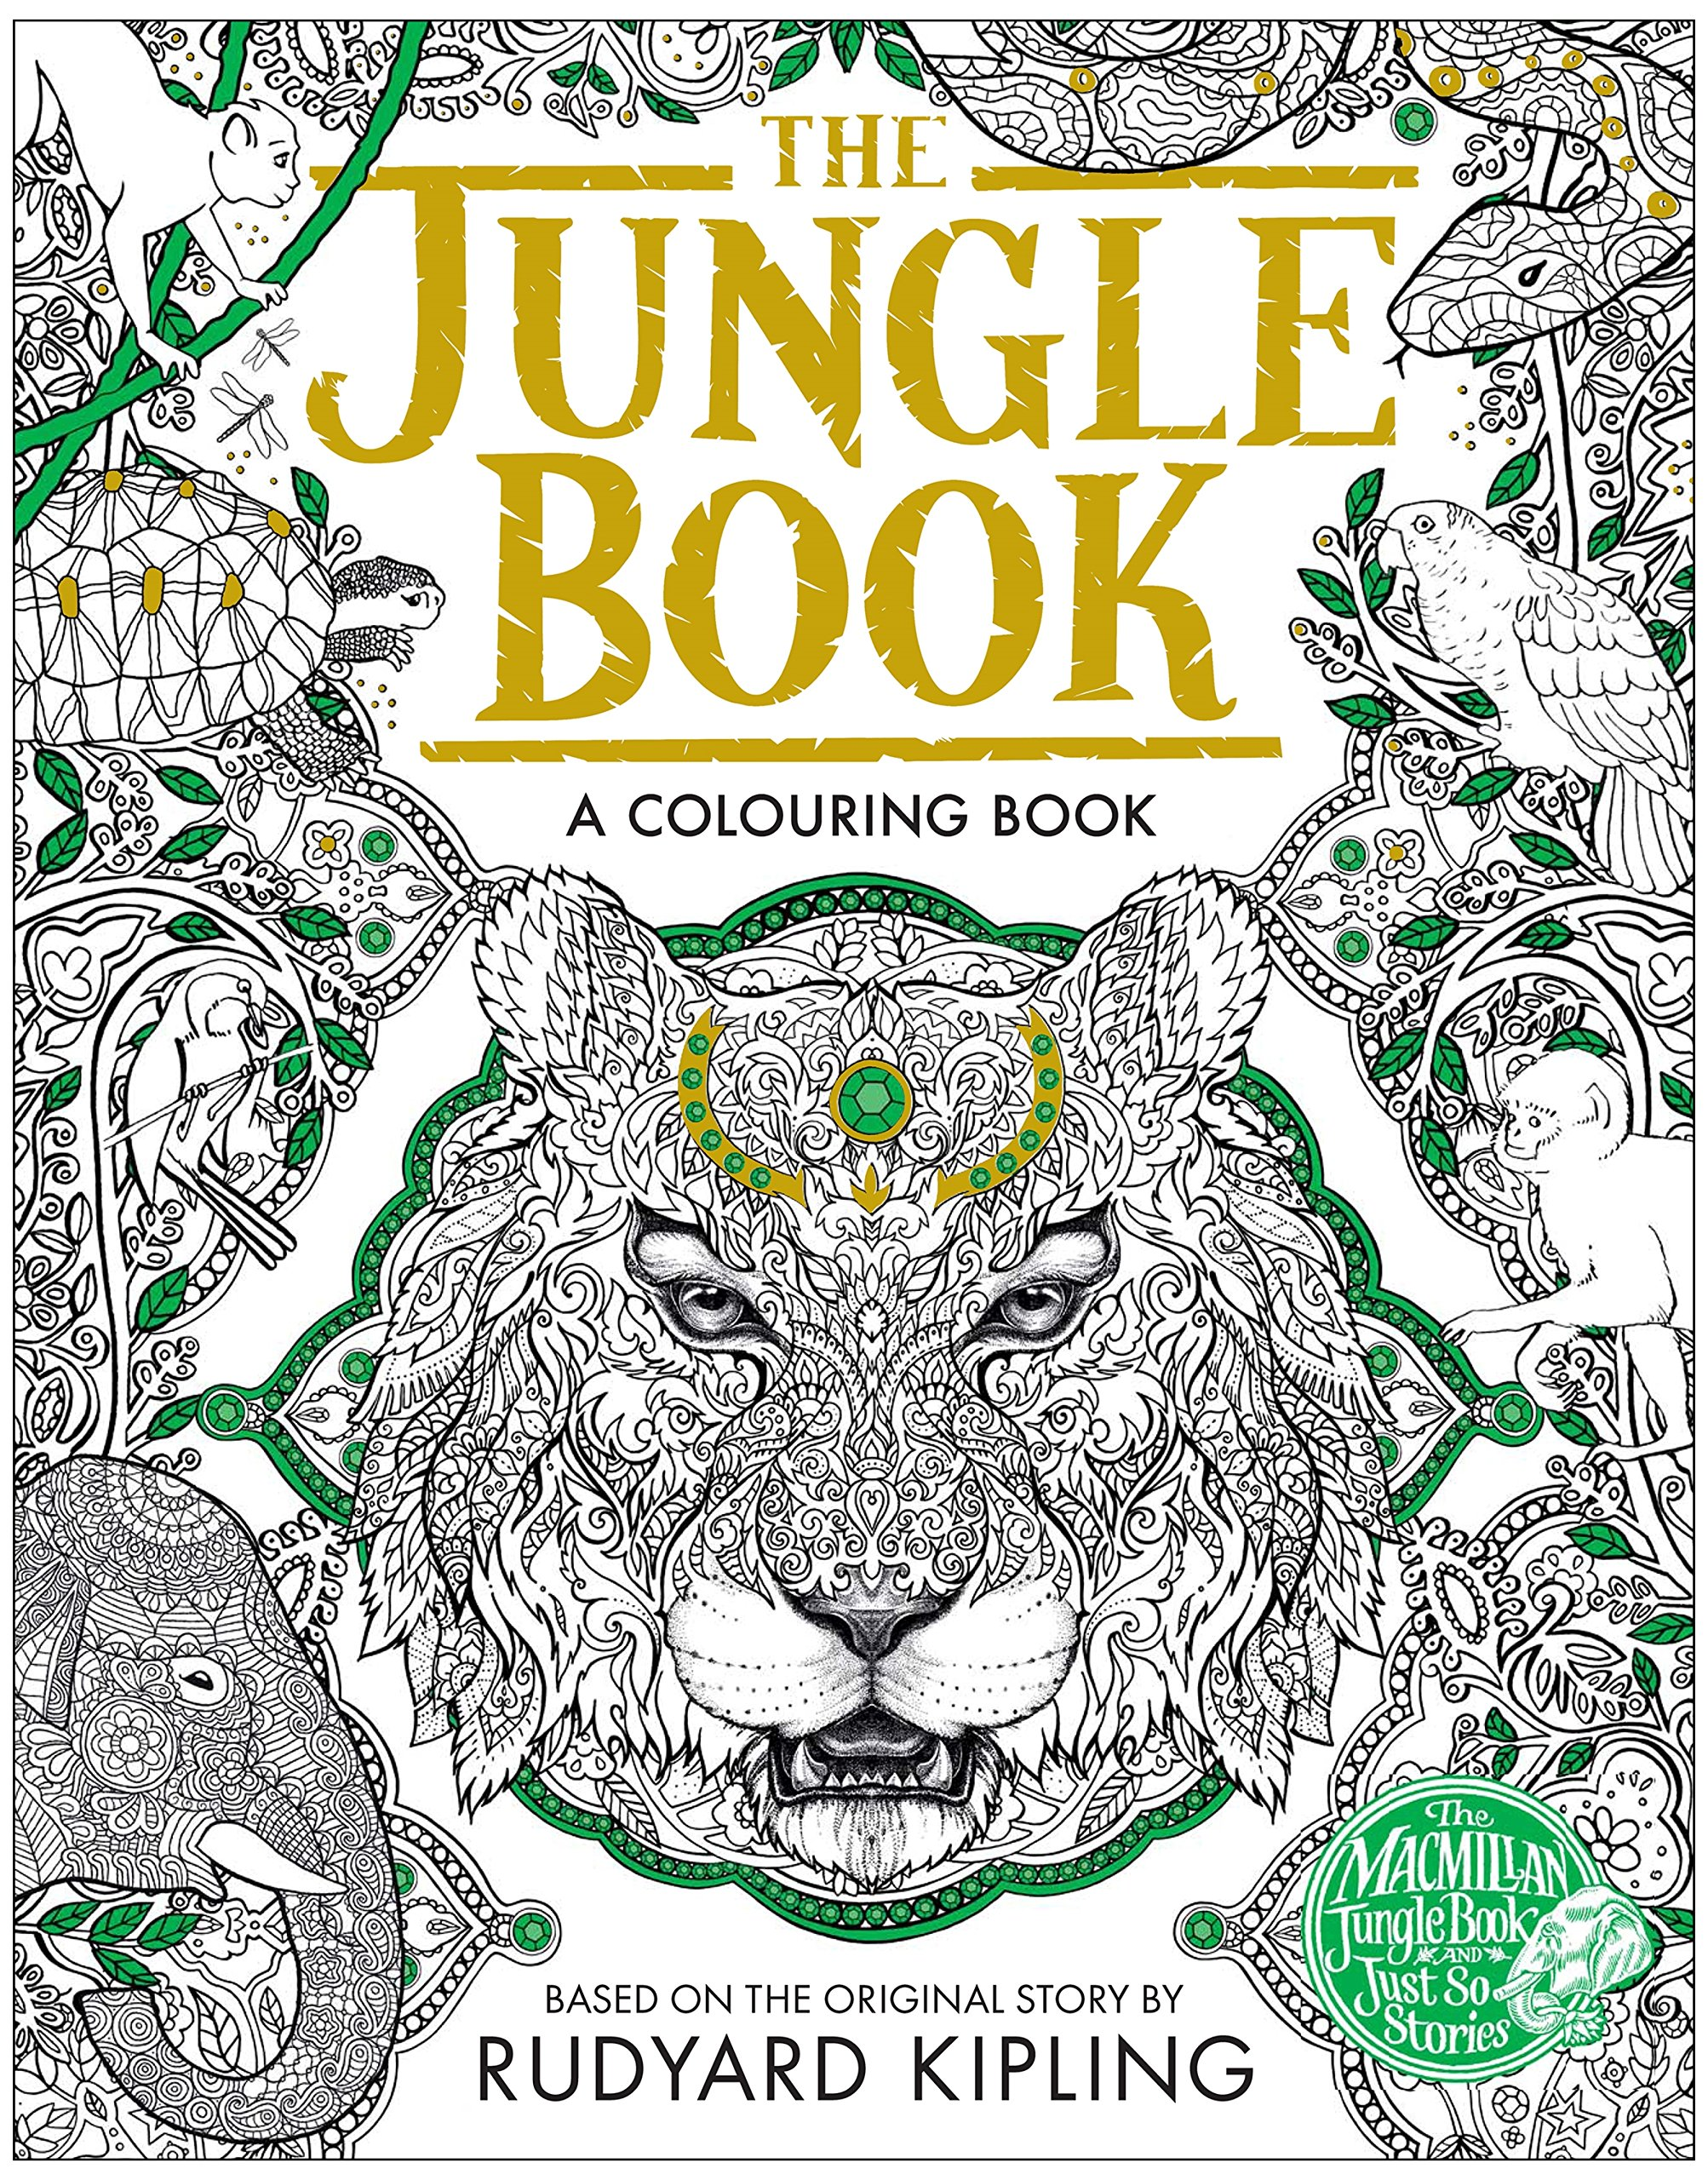 Colouring book on online - Buy The Macmillan Jungle Book Colouring Book Macmillan Classic Colouring Books Book Online At Low Prices In India The Macmillan Jungle Book Colouring